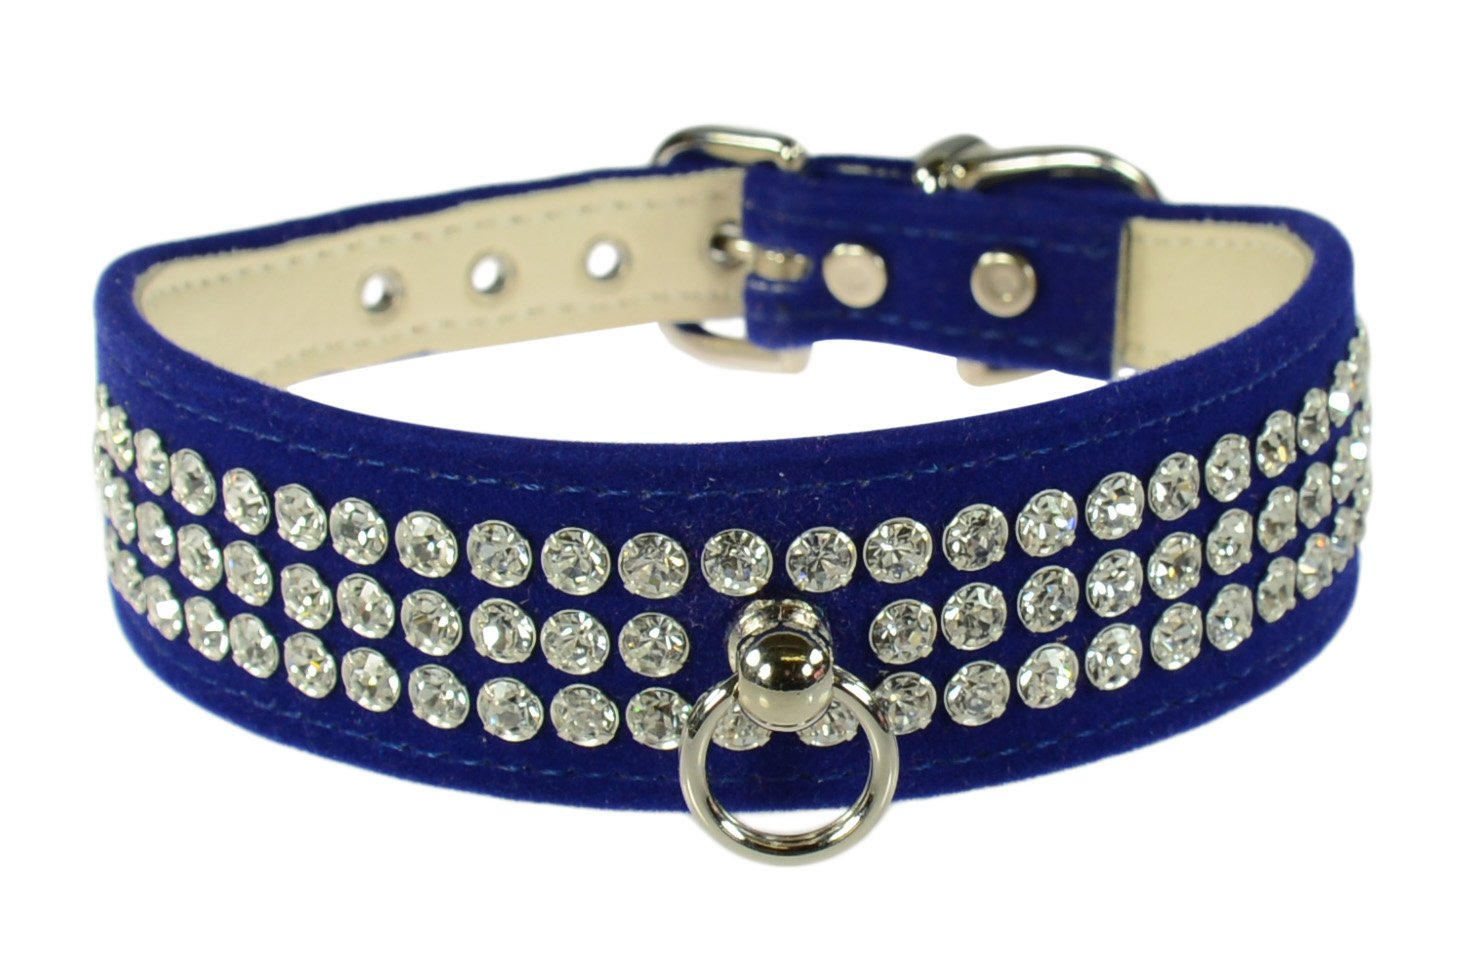 Evans Collars 1 1 8  Shaped Collar with 3 Row Jewels, Size 12, Velvet, bluee